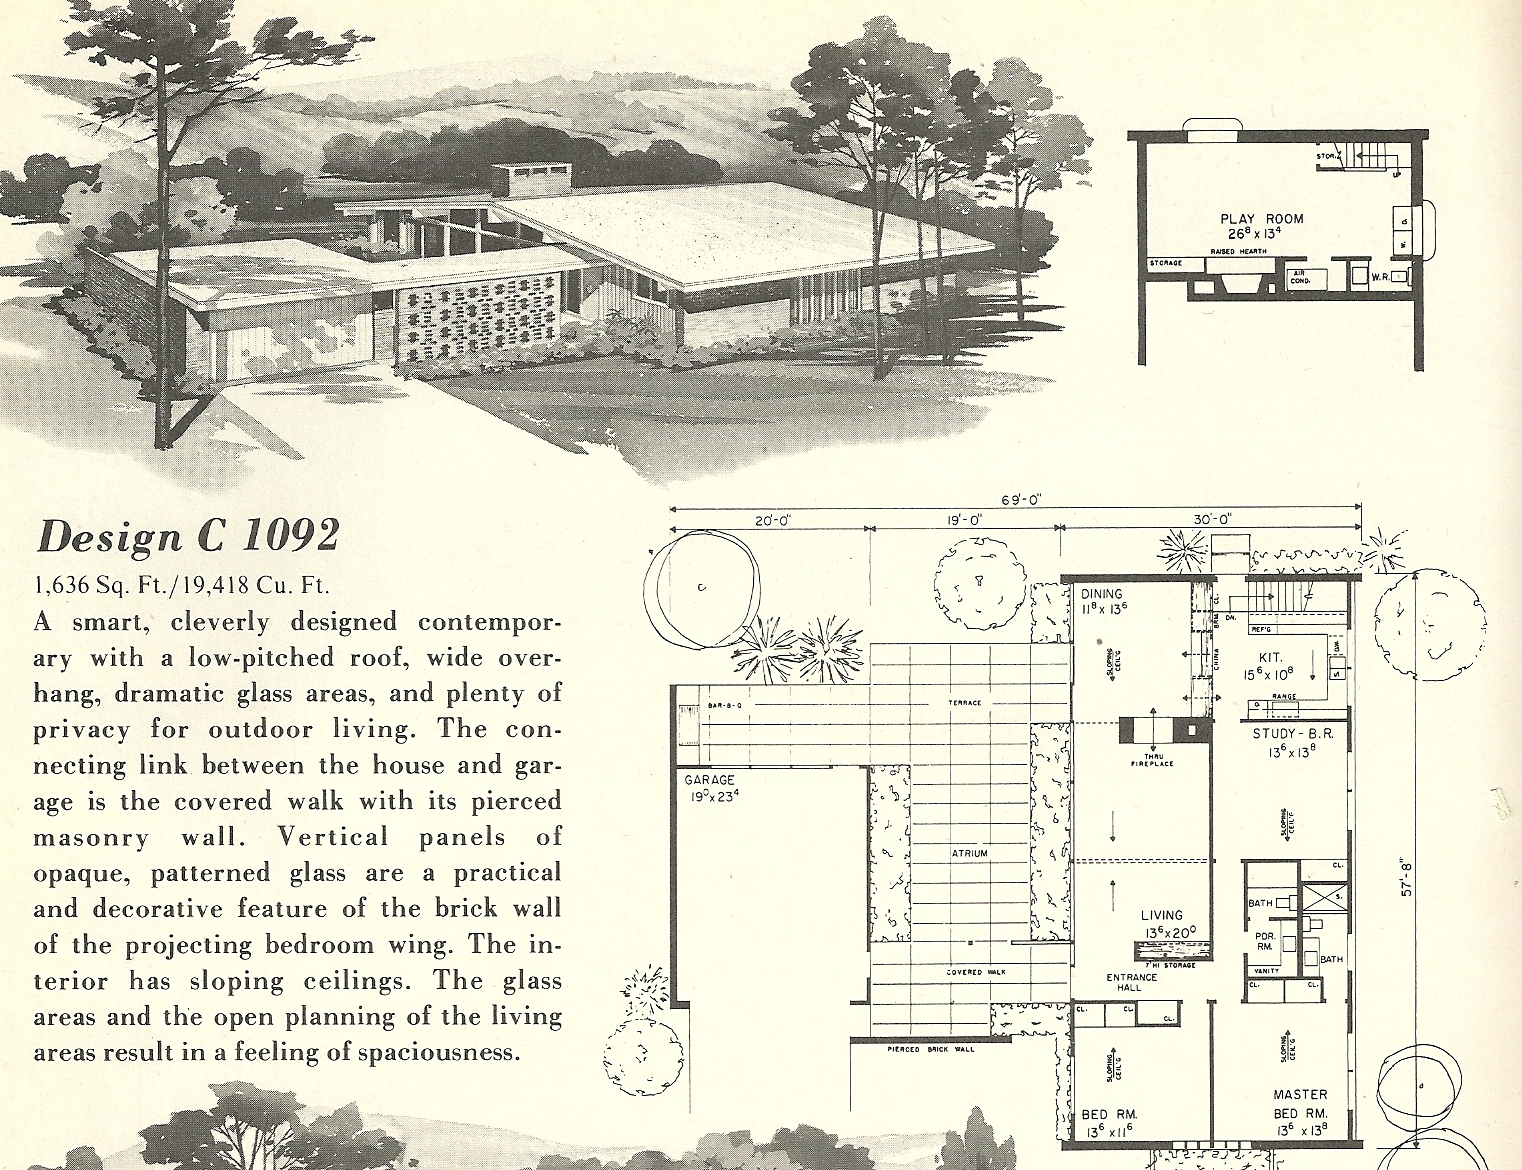 Vintage house plans 1092 antique alter ego for Mid century home plans